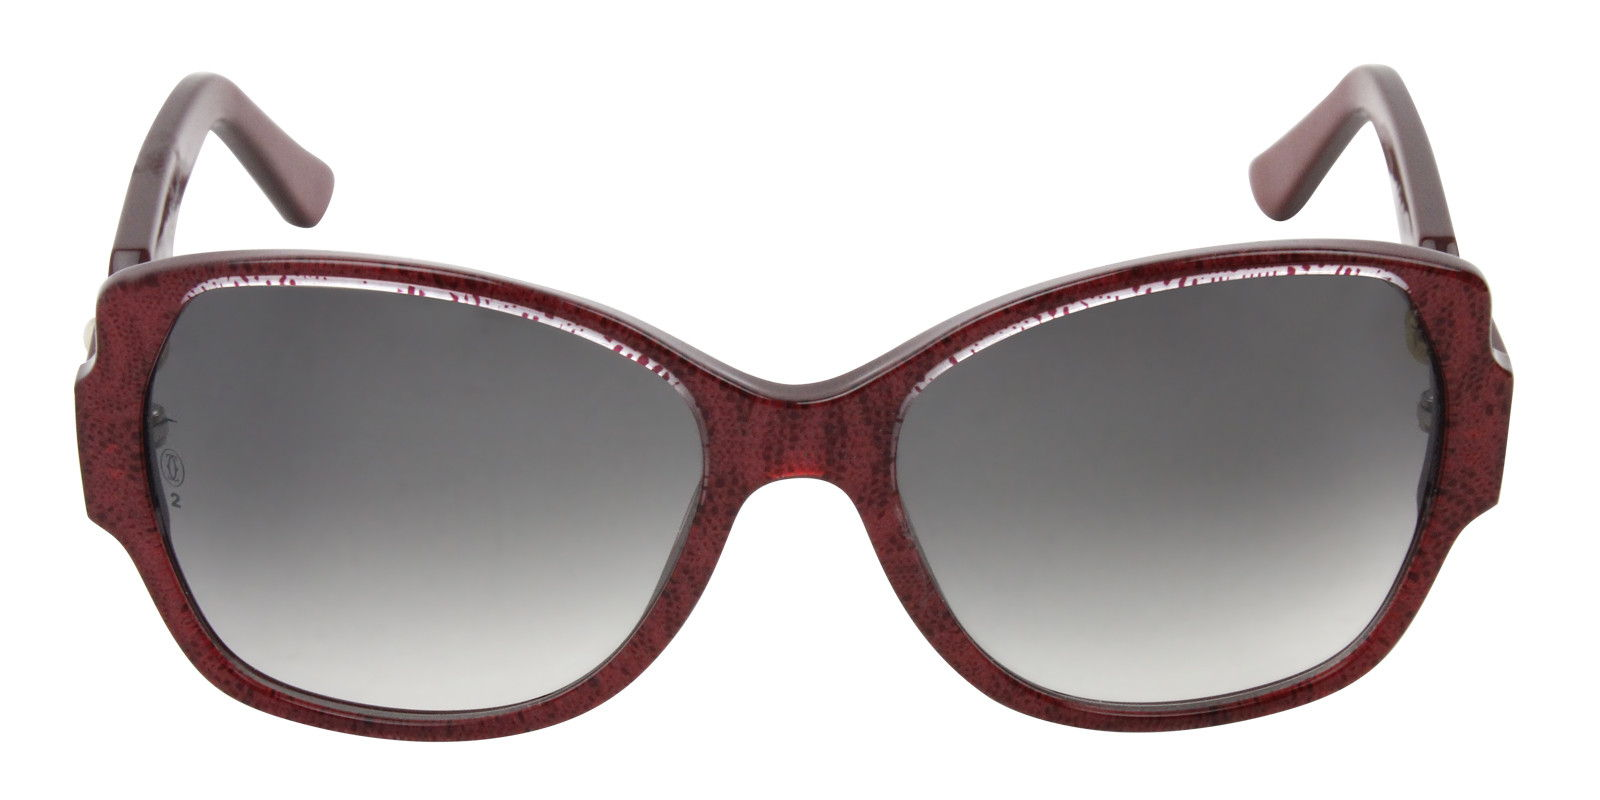 CARTIER WOMEN'S TRINITY T8200914 SUNGLASSES Red (front)